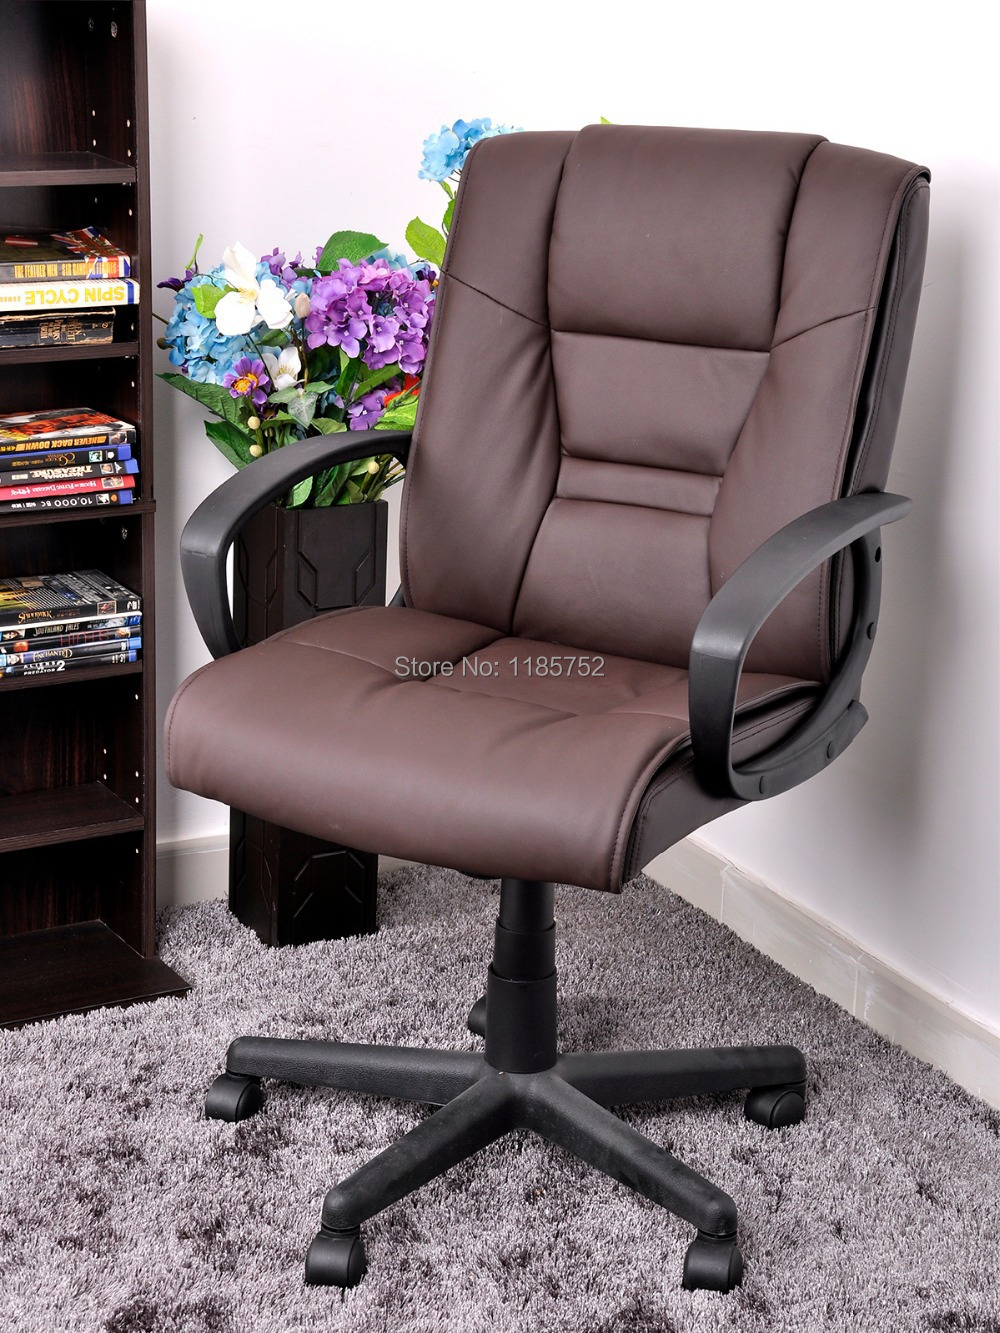 New Home Furniture Chair Brown Pu Leather Metal Computer With Arms Swivel Office